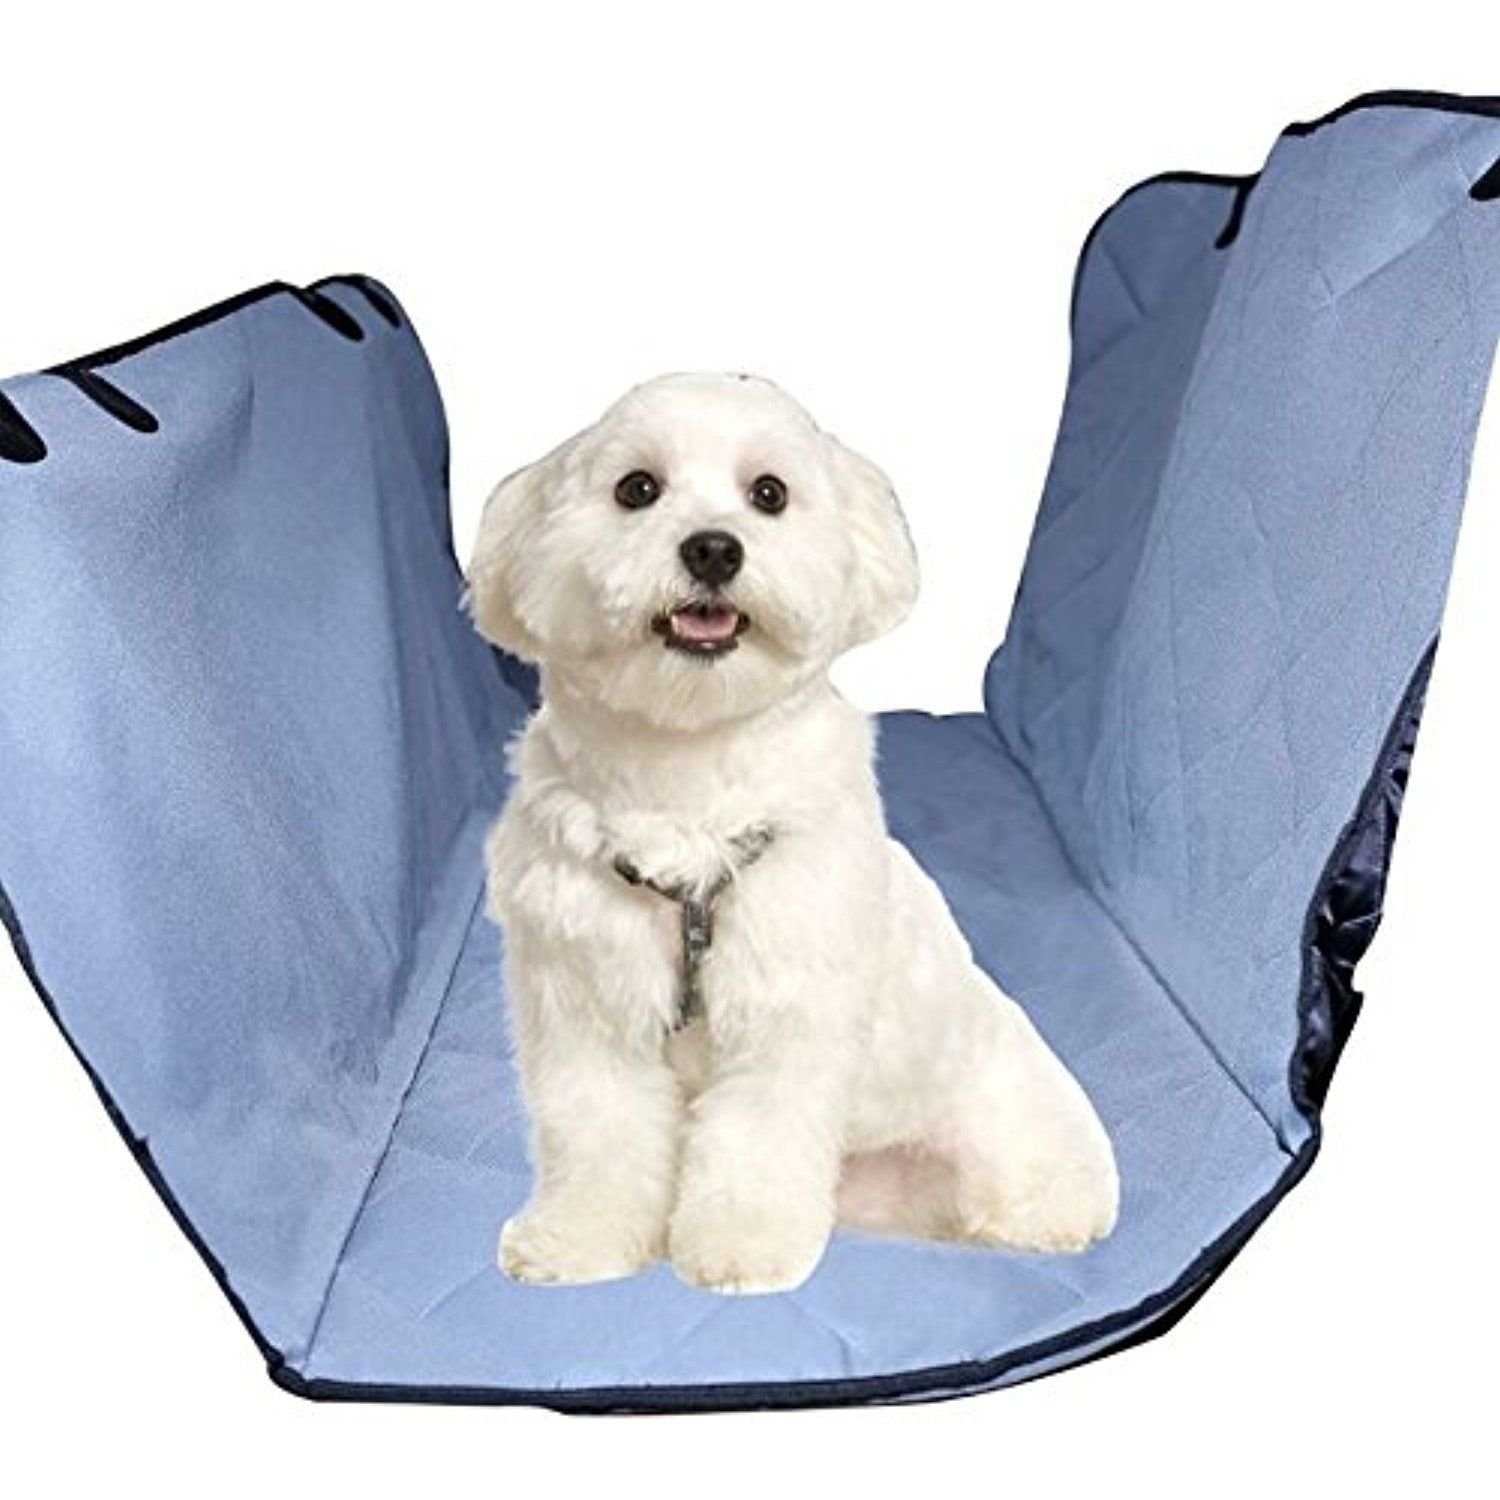 Uhaskie Pet Car Seat Covers,Dog Seat Cover for Cars,SUV